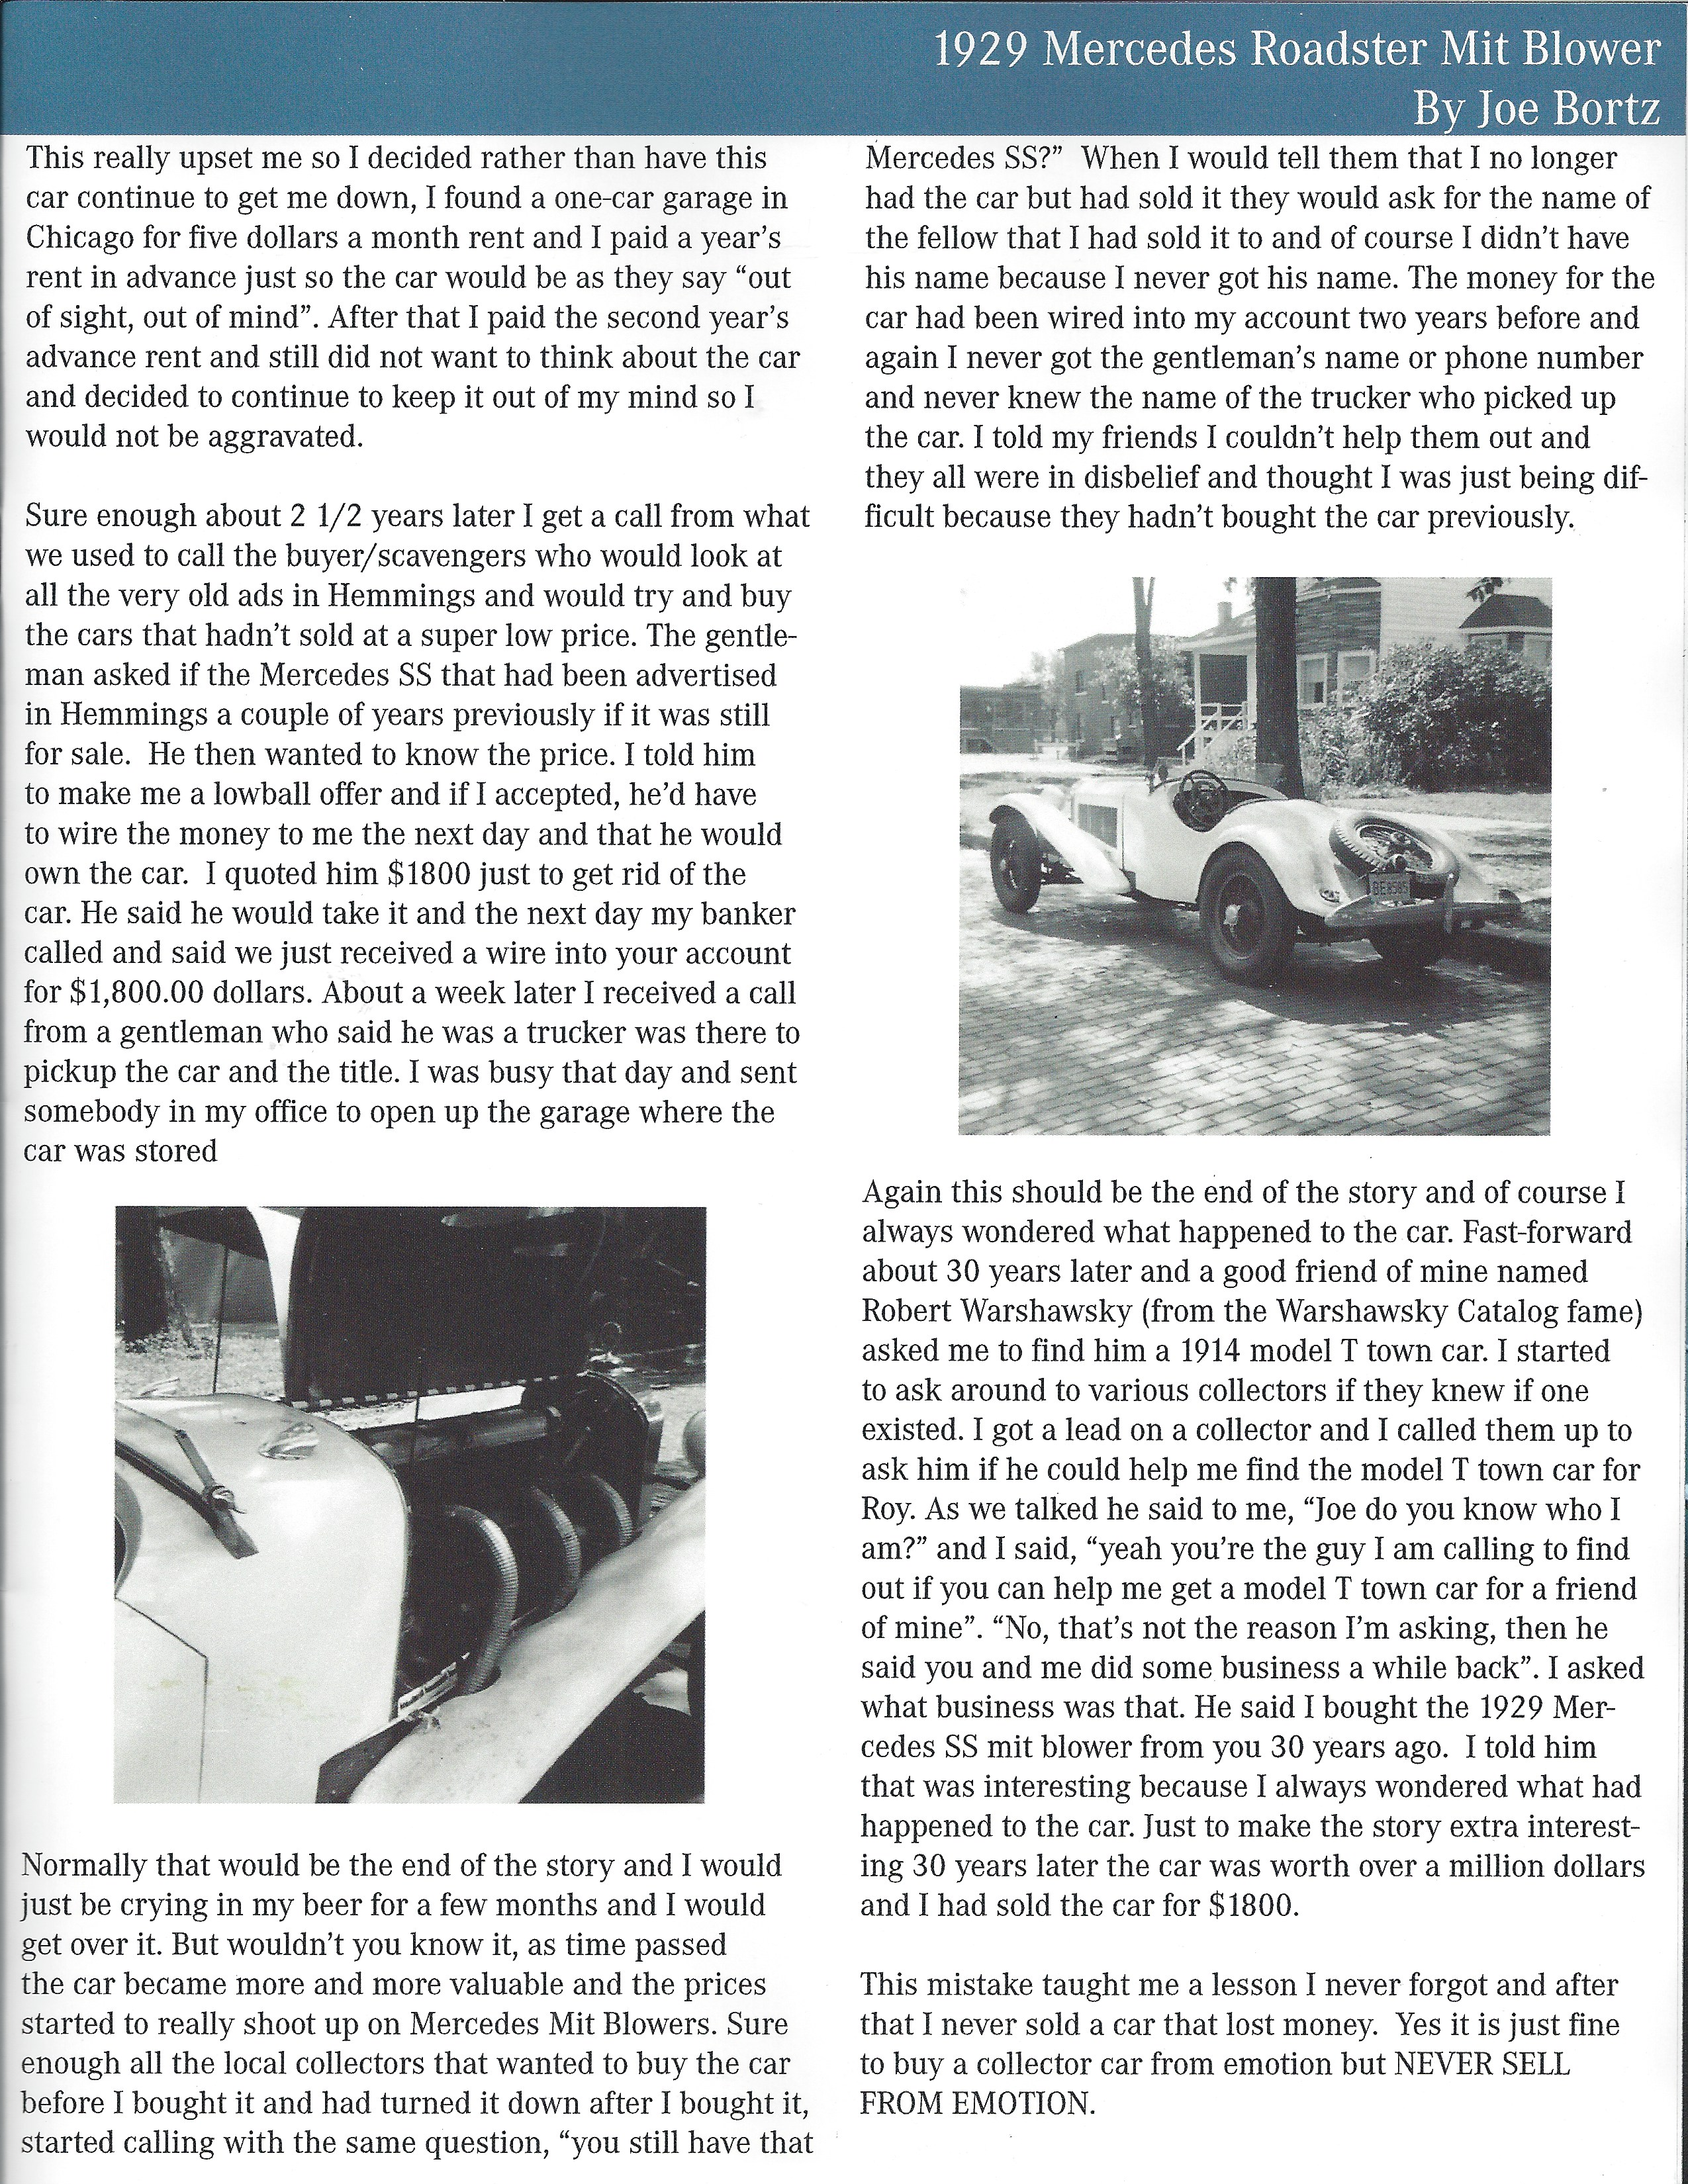 1929 Mercedes Roadster Mit Blower by Joe Bortz, Star Reflections 02 2016